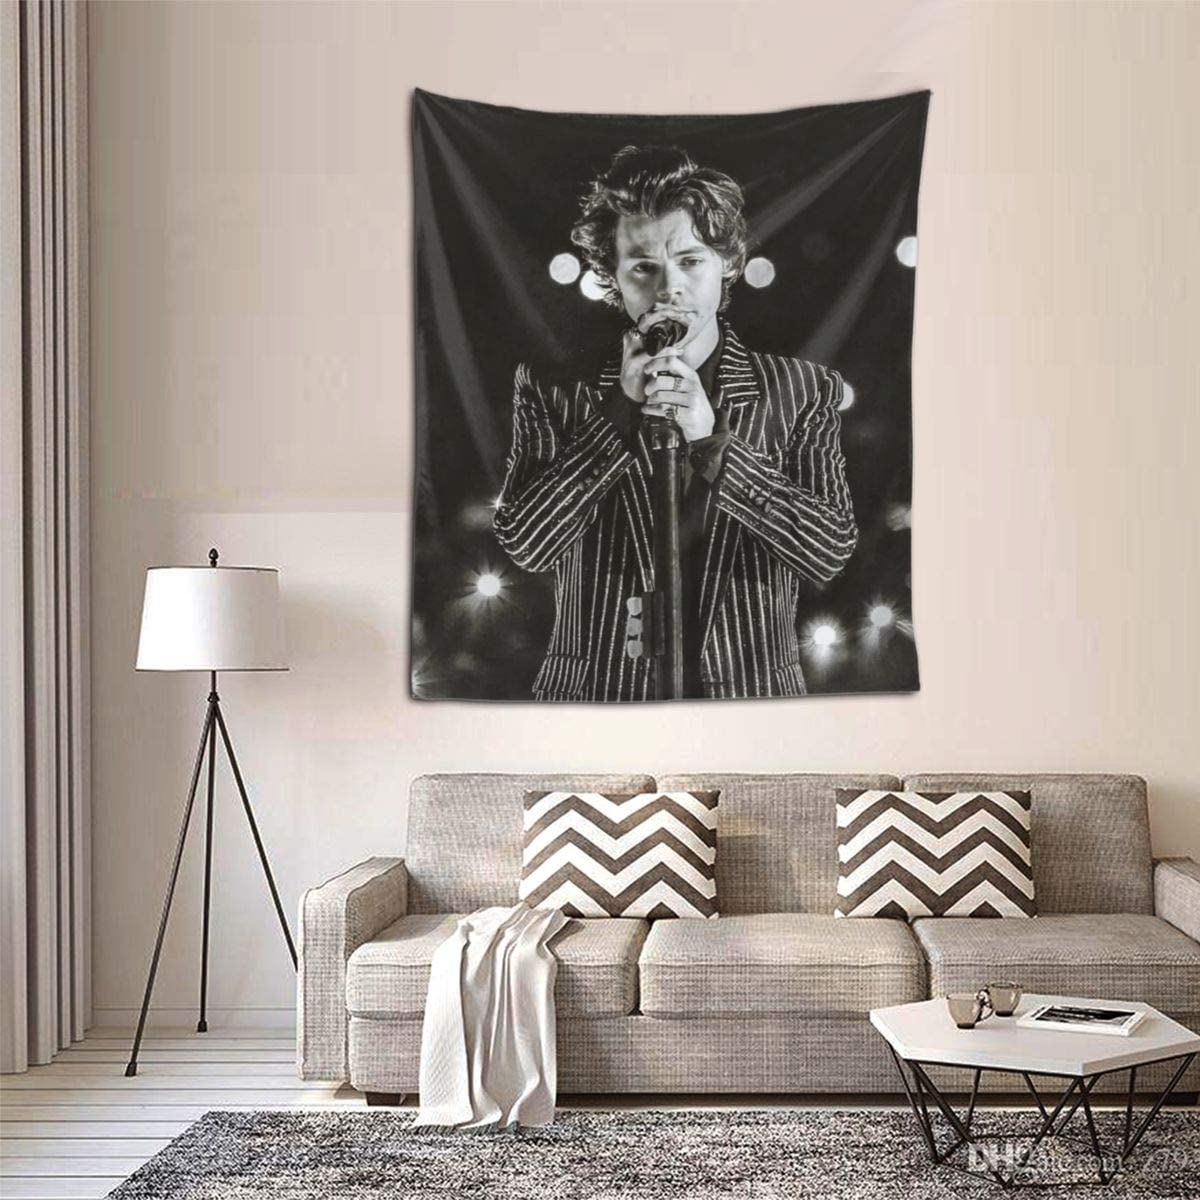 C-CASE Harry Styles Tapestry Wall Hanging Tapestries Wall Blanket Wall Art for Living Room Bedroom Home Decor 51 X 60 Inch